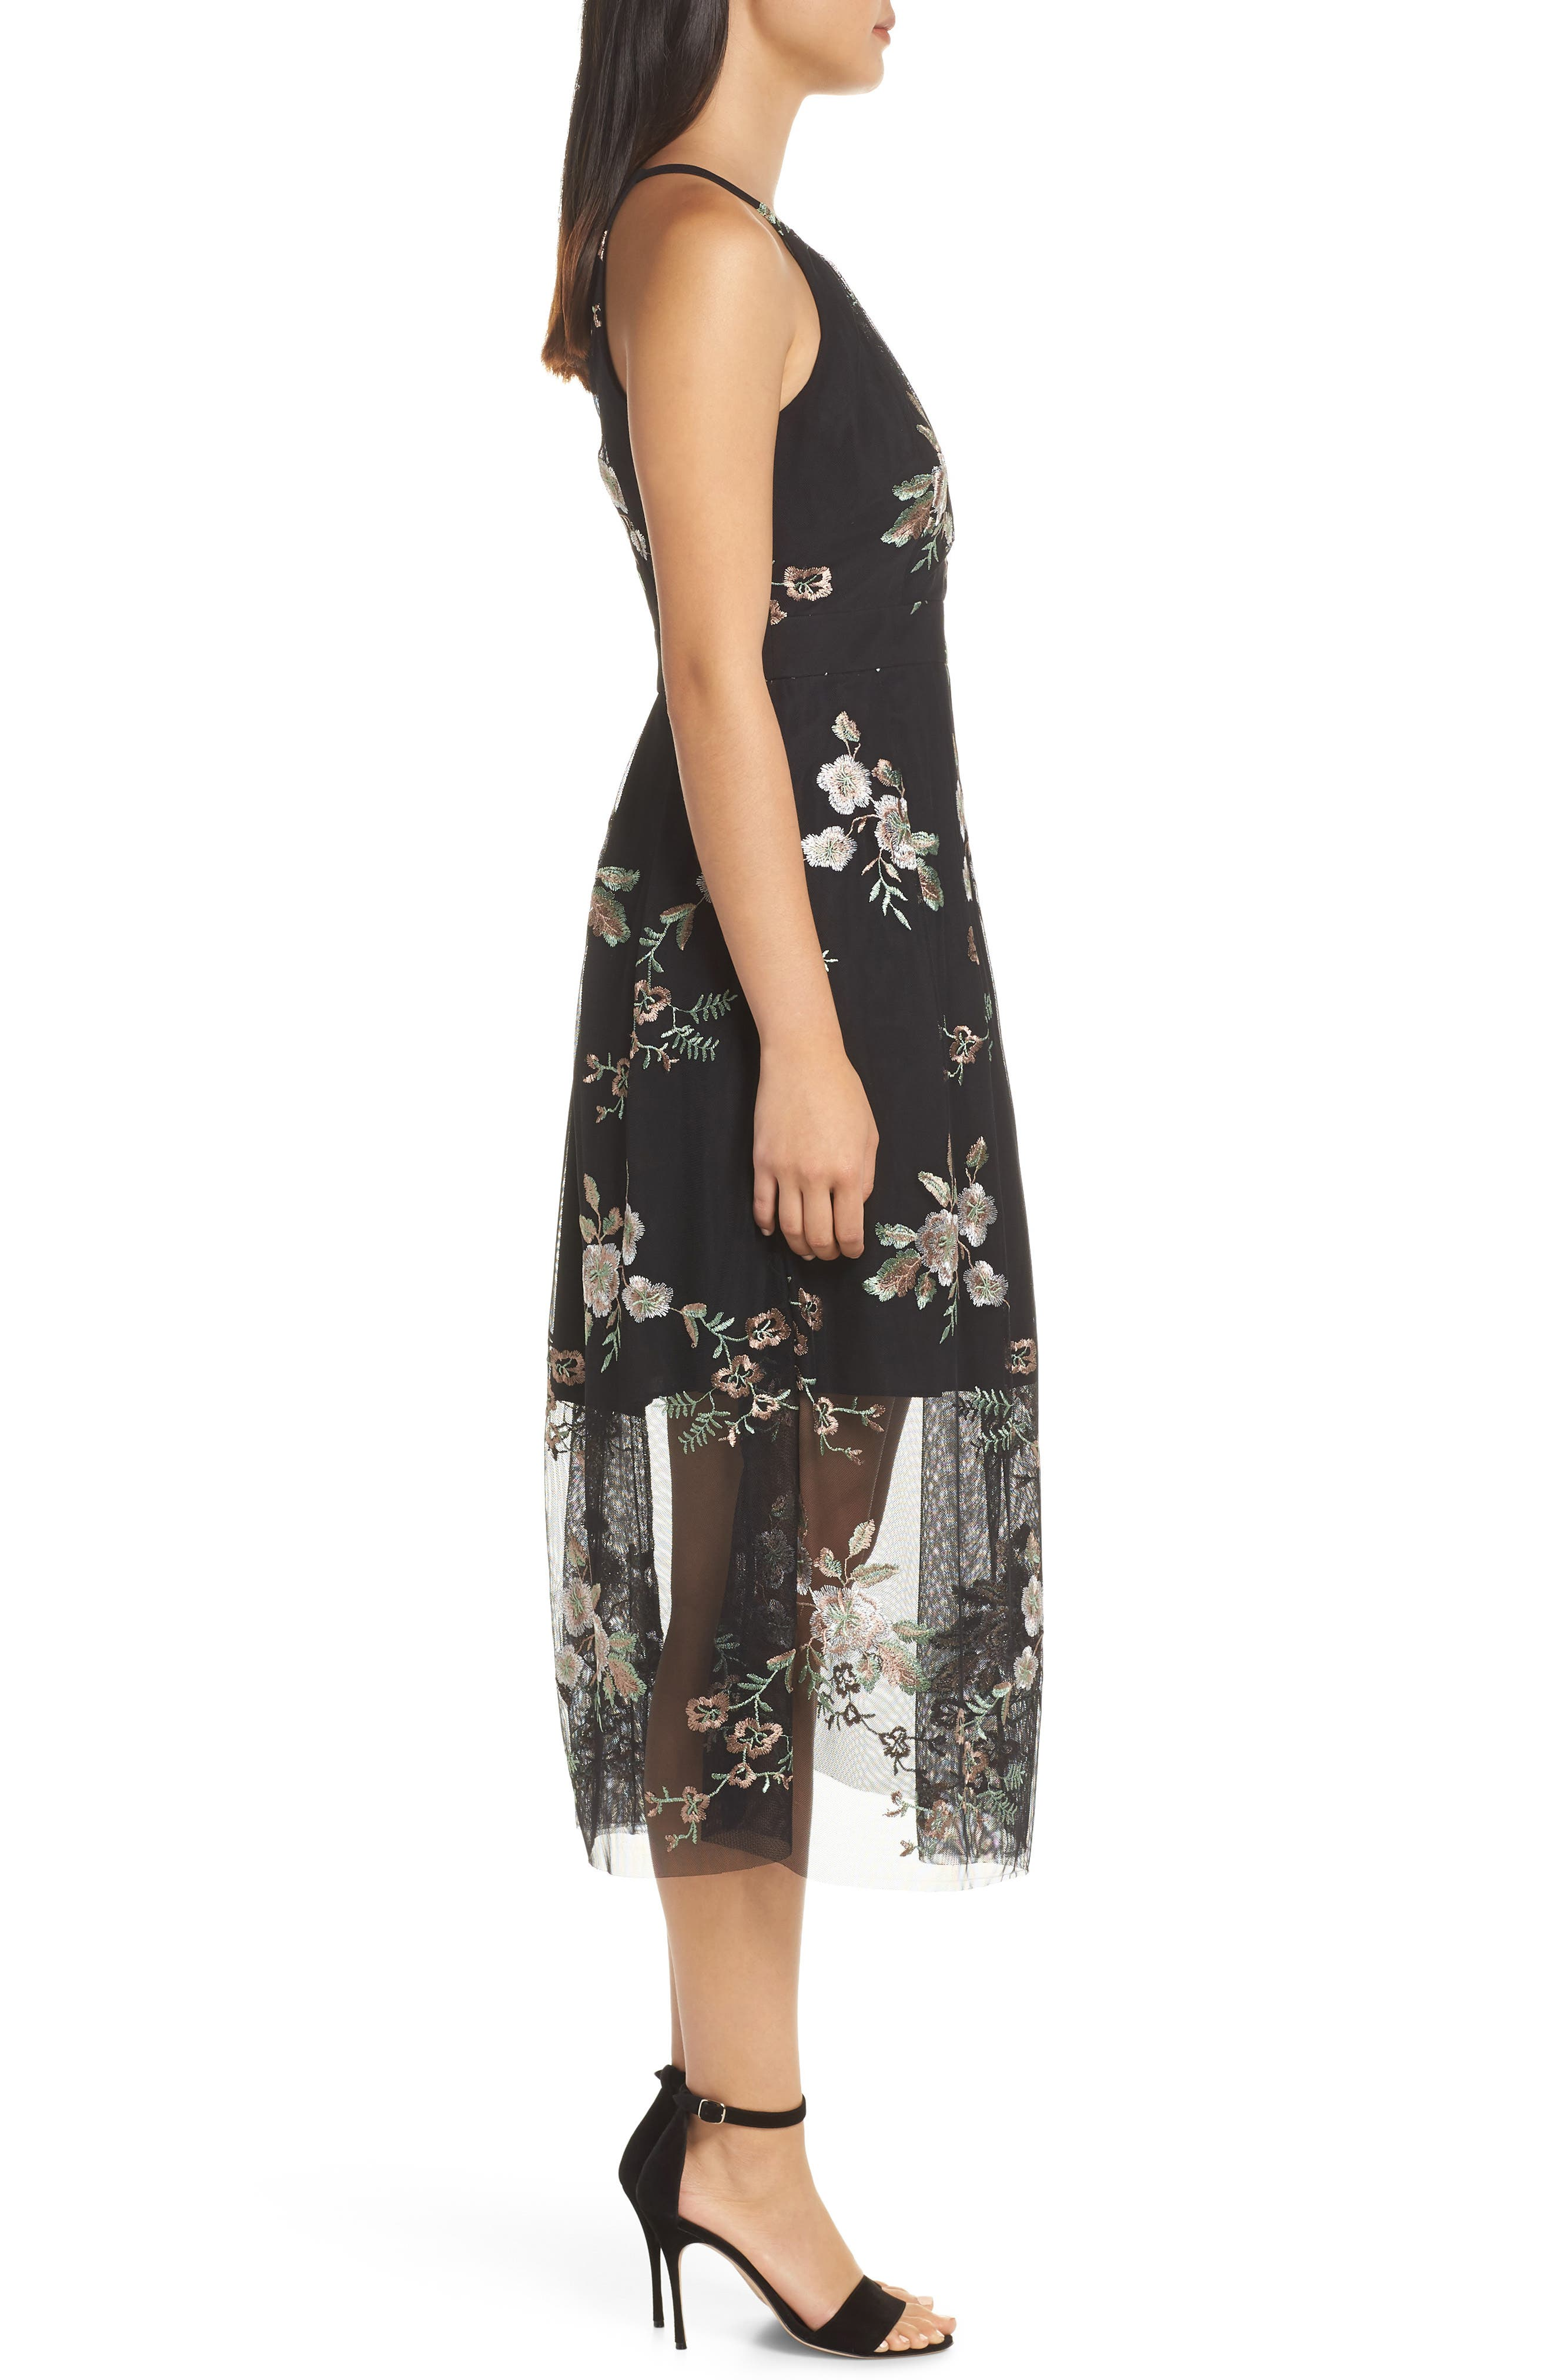 VINCE CAMUTO, Embroidered Mesh Midi Dress, Alternate thumbnail 4, color, 019